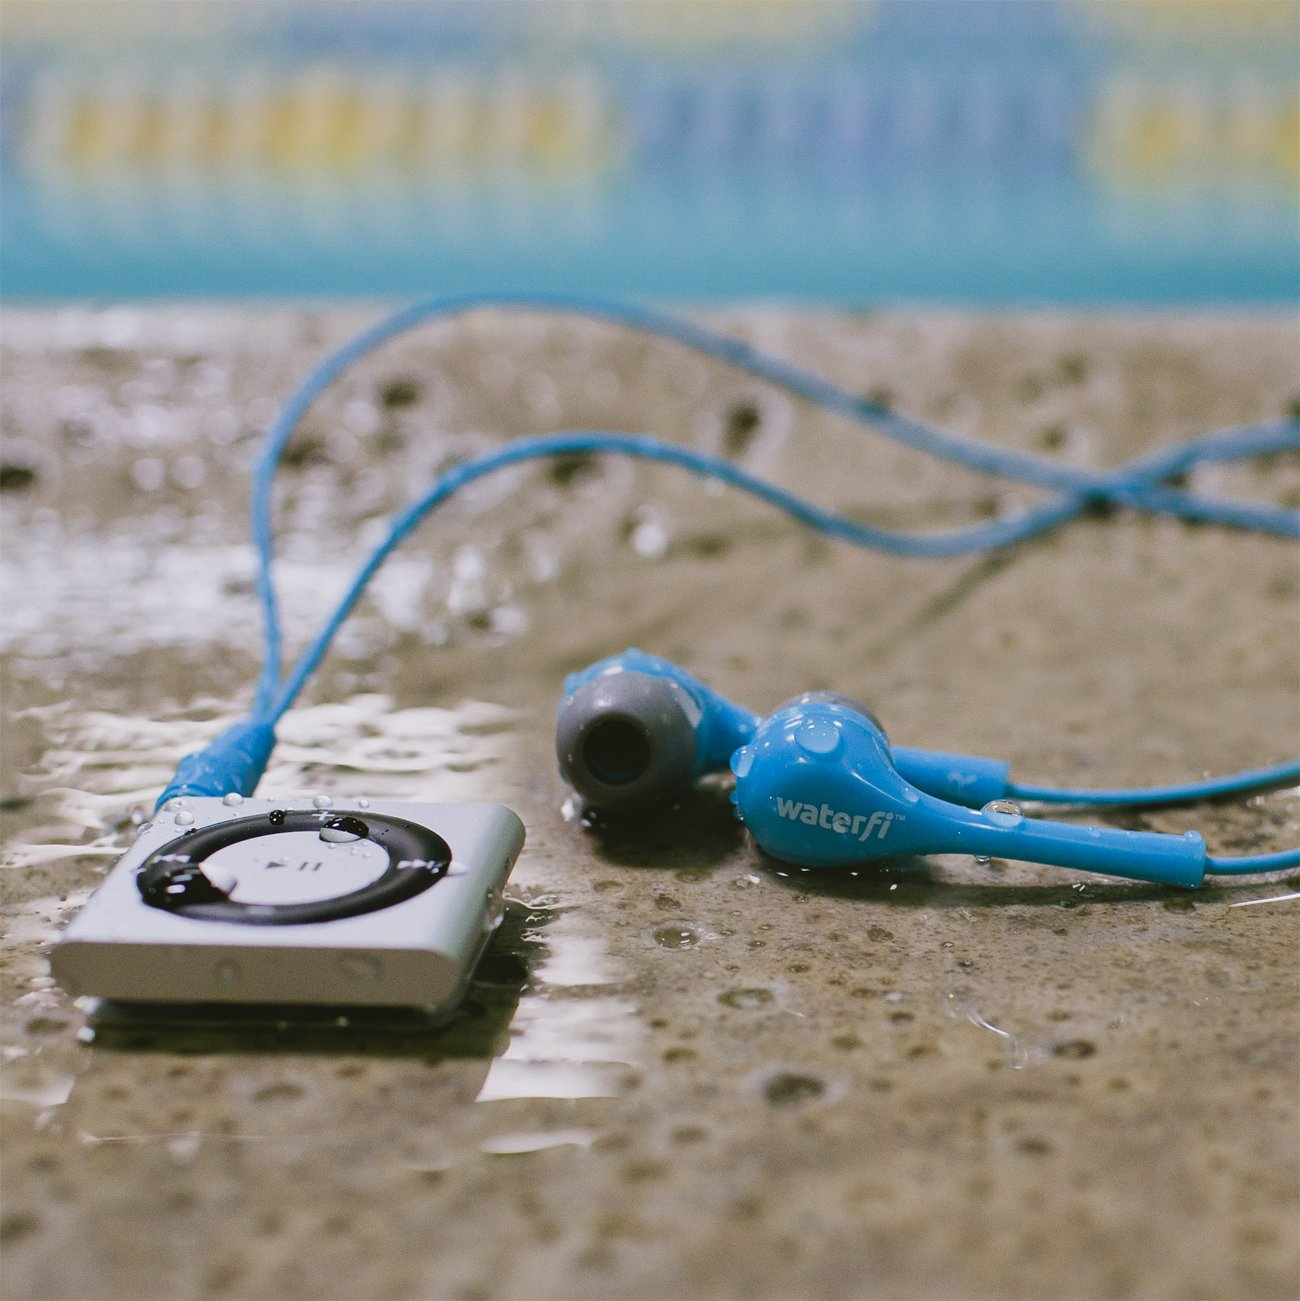 waterfi--waterproof--ipod--shuffle--wet